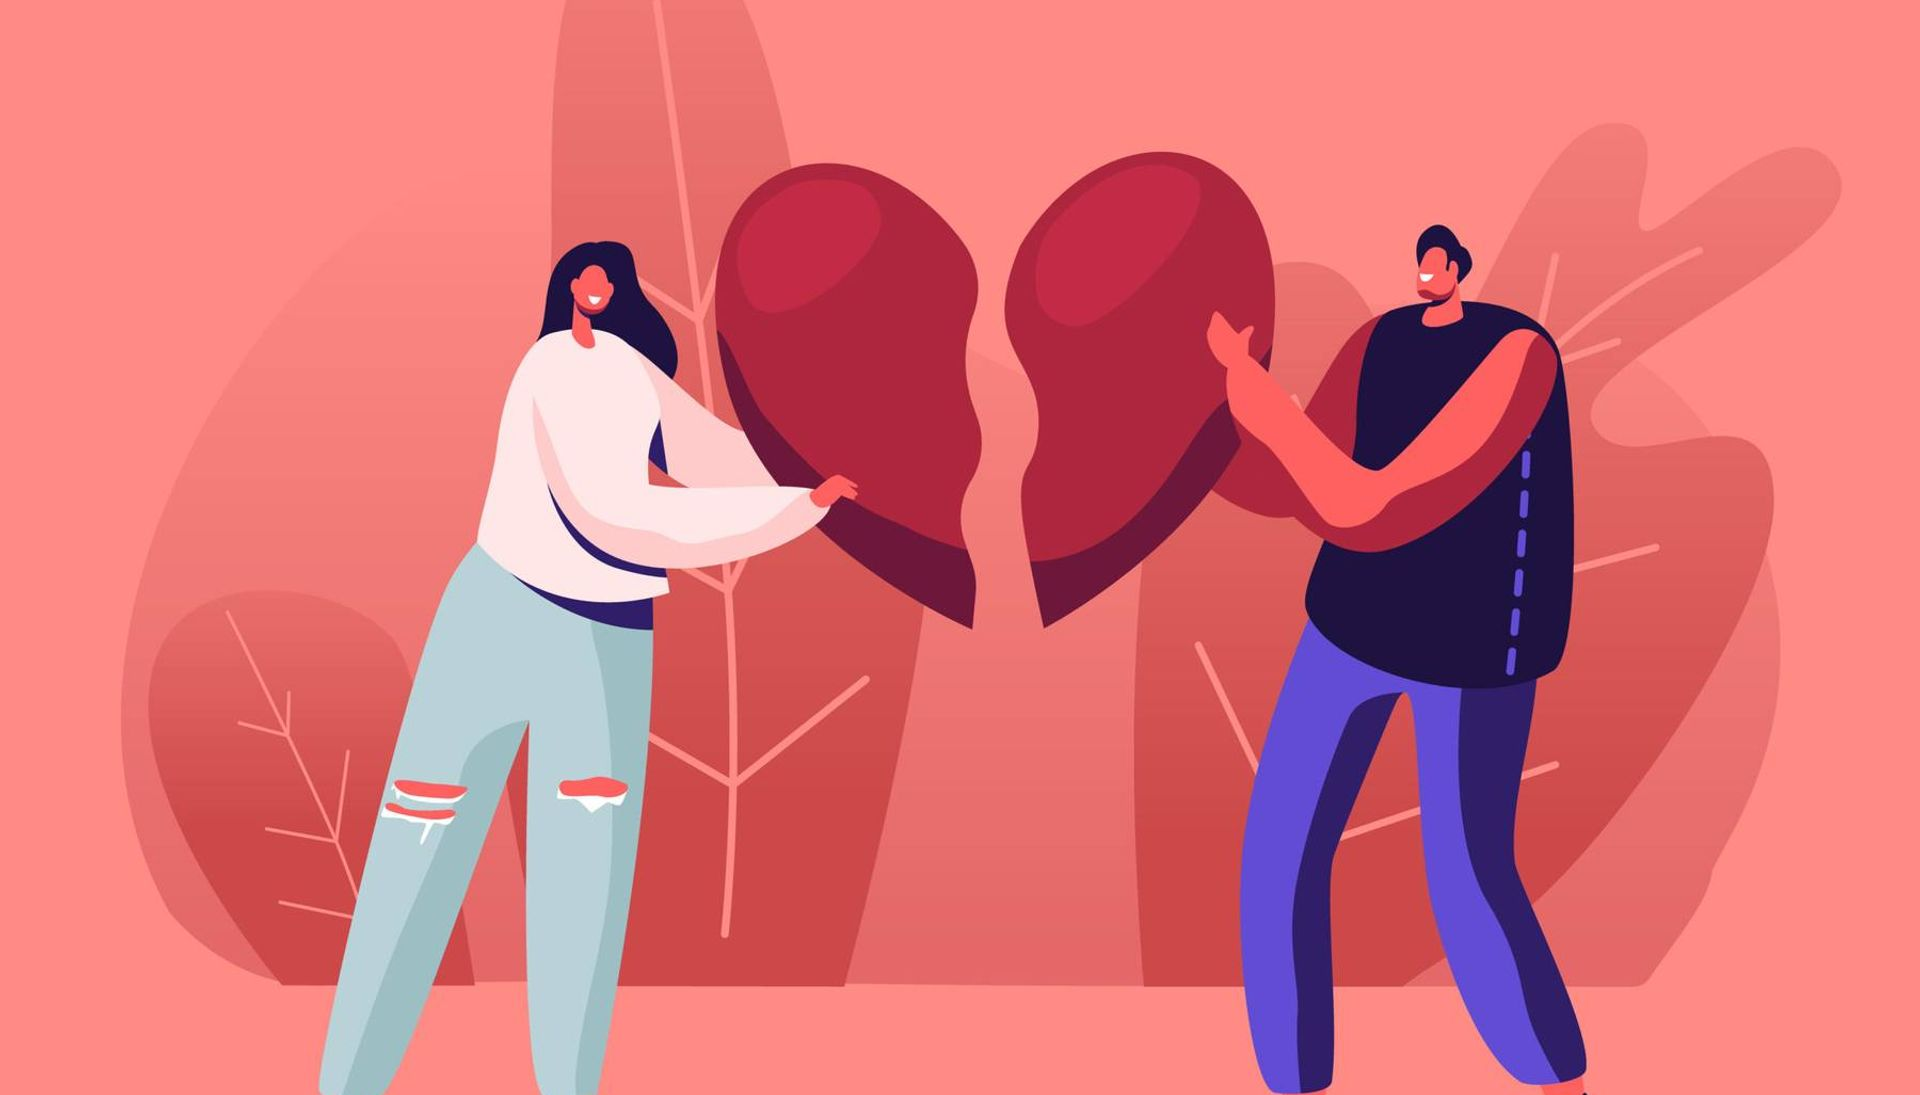 Illustration of a couple breaking up and each holding half of a broken heart